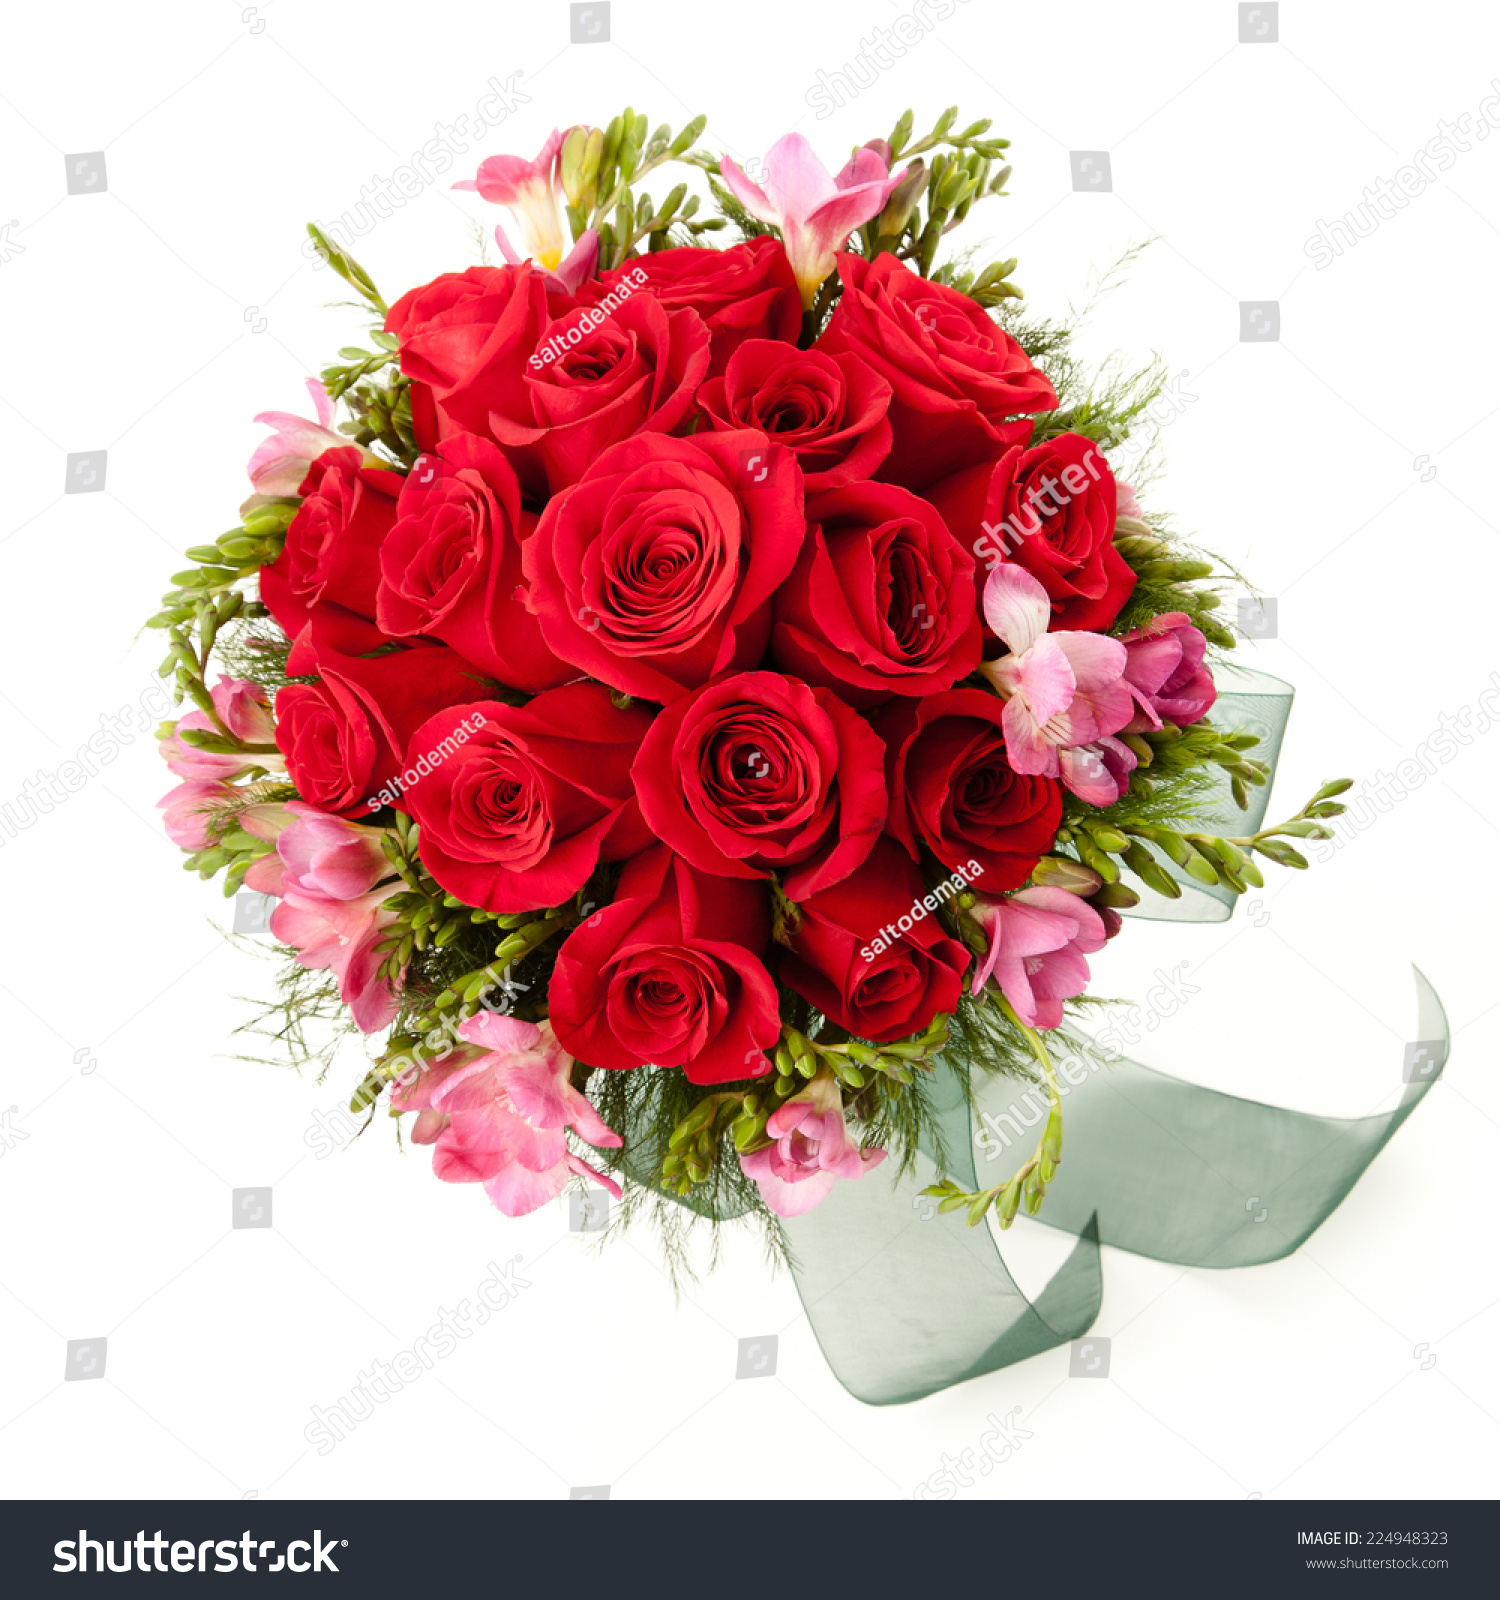 Red Roses Freesia Flowers Wedding Bouquet Stock Photo Edit Now